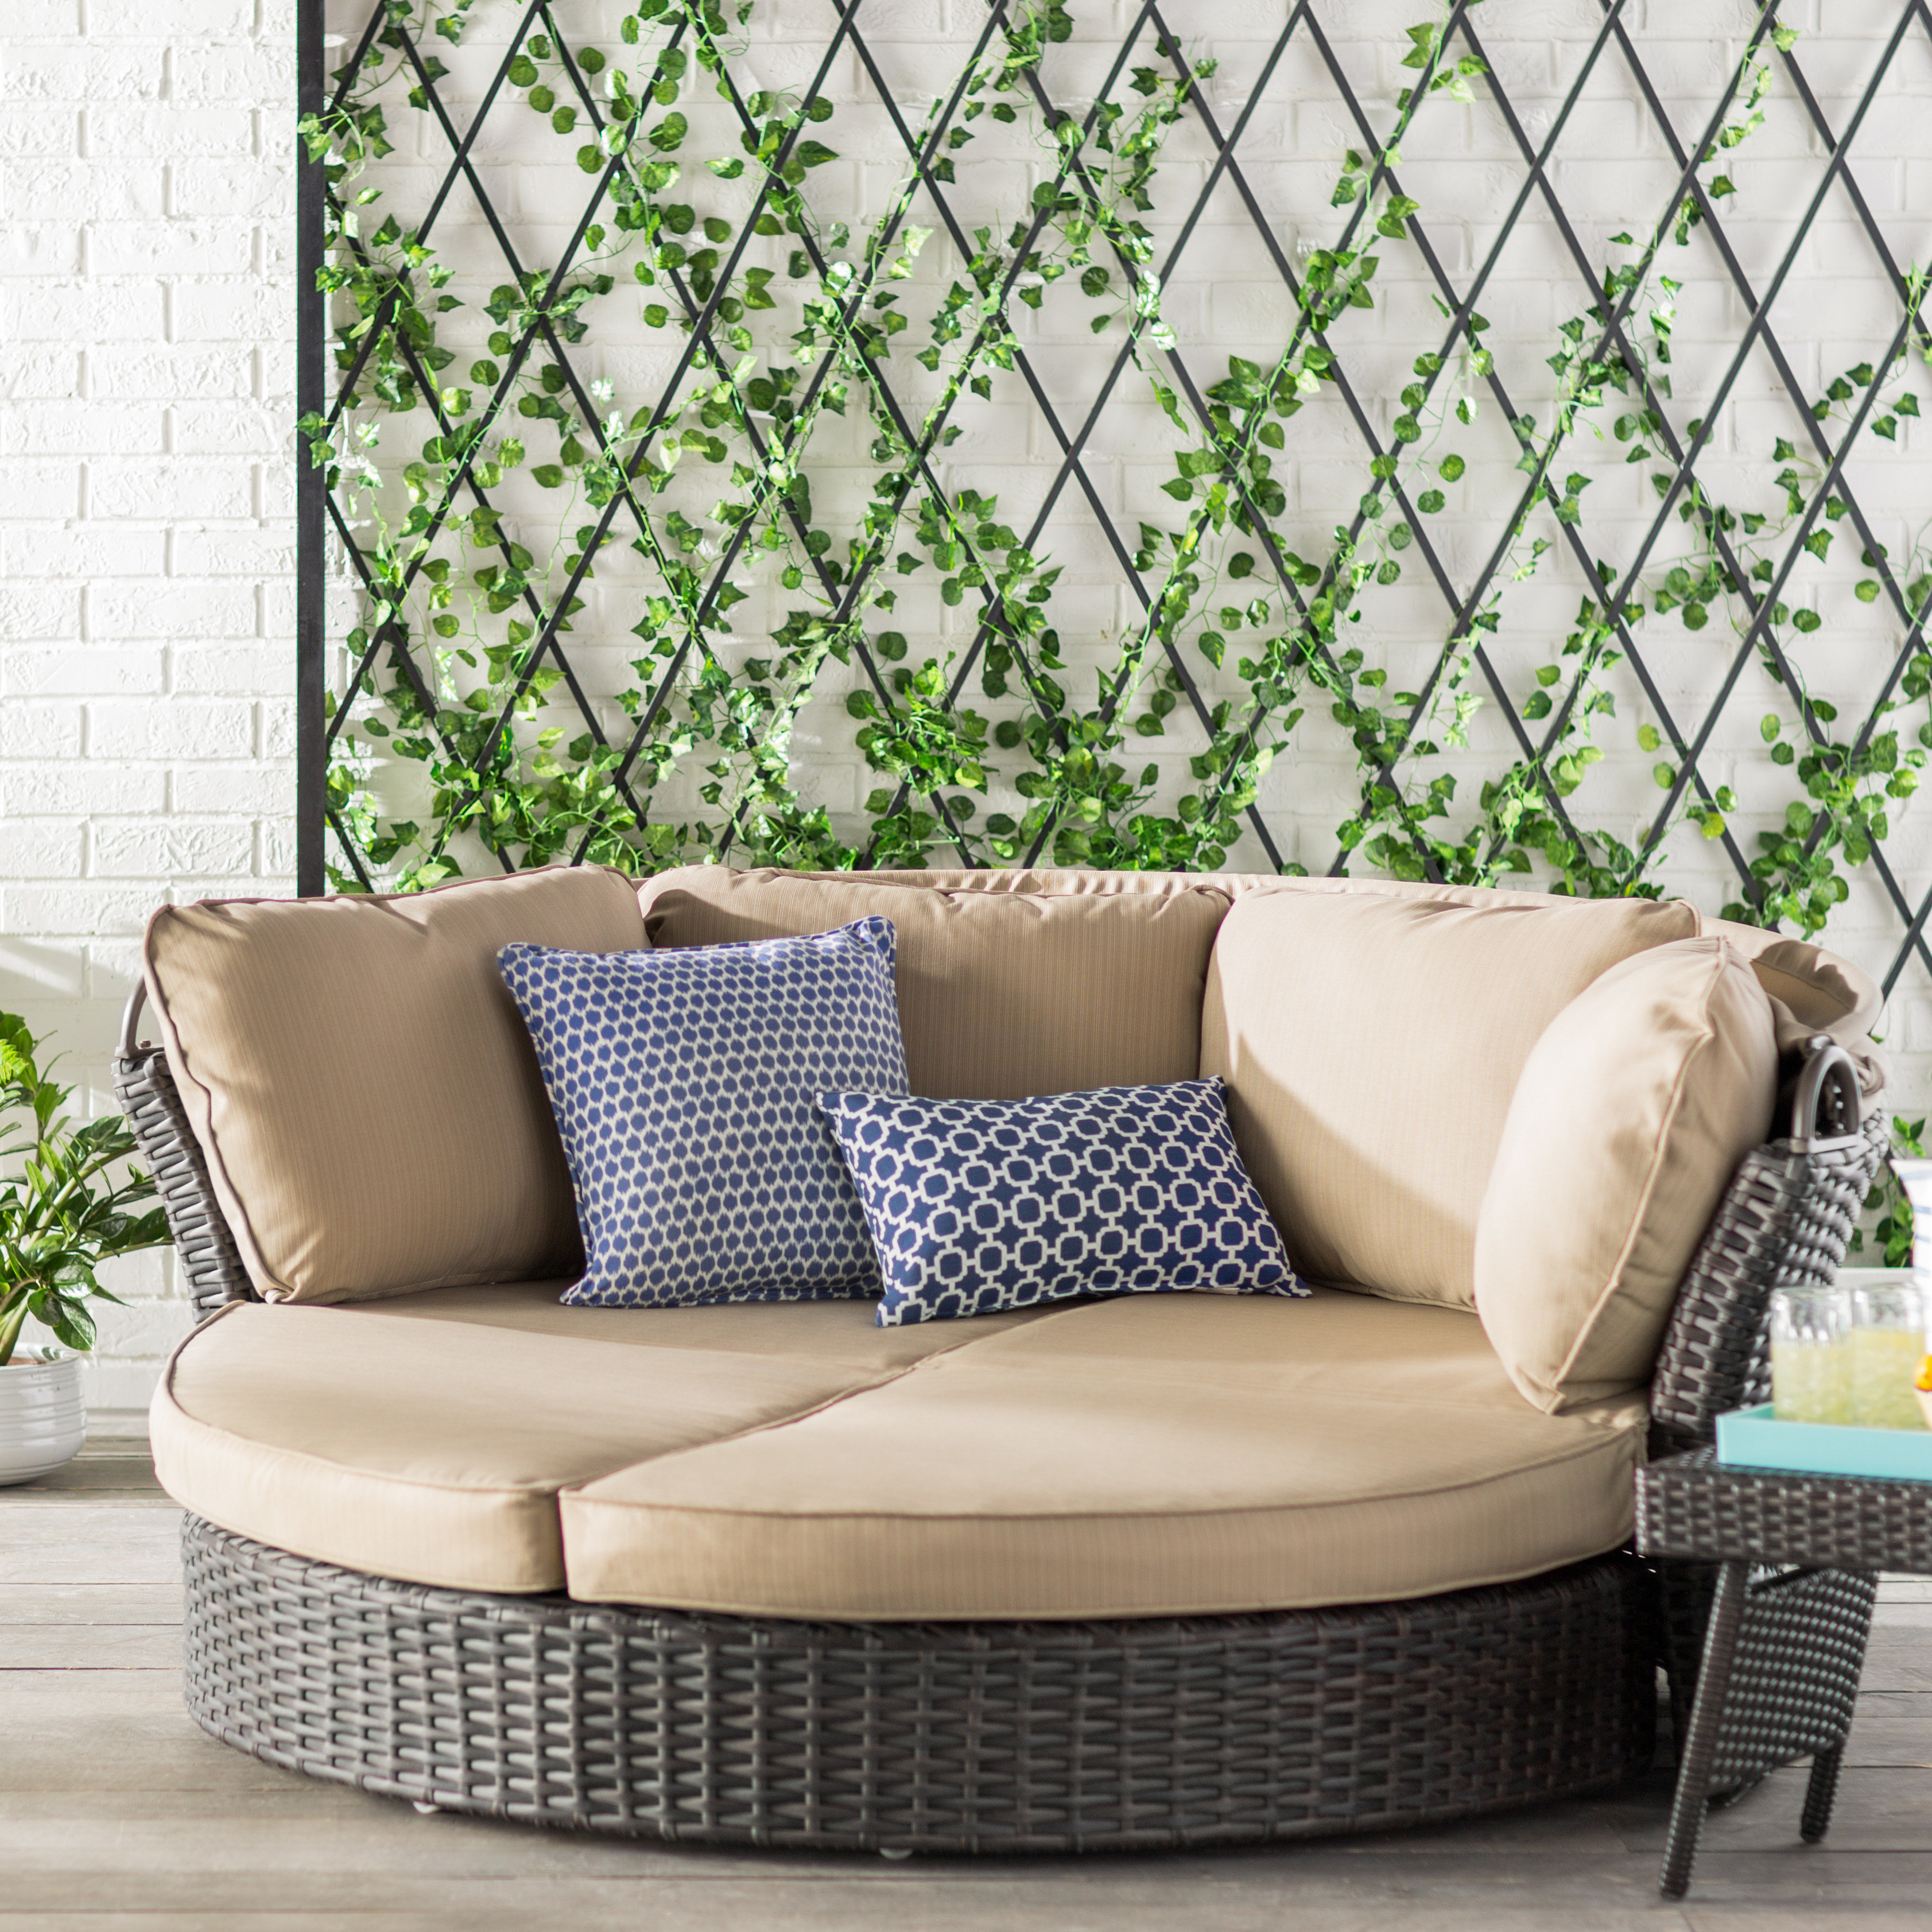 Tiana Patio Daybed With Cushions In Trendy Patio Daybeds With Cushions (View 17 of 20)